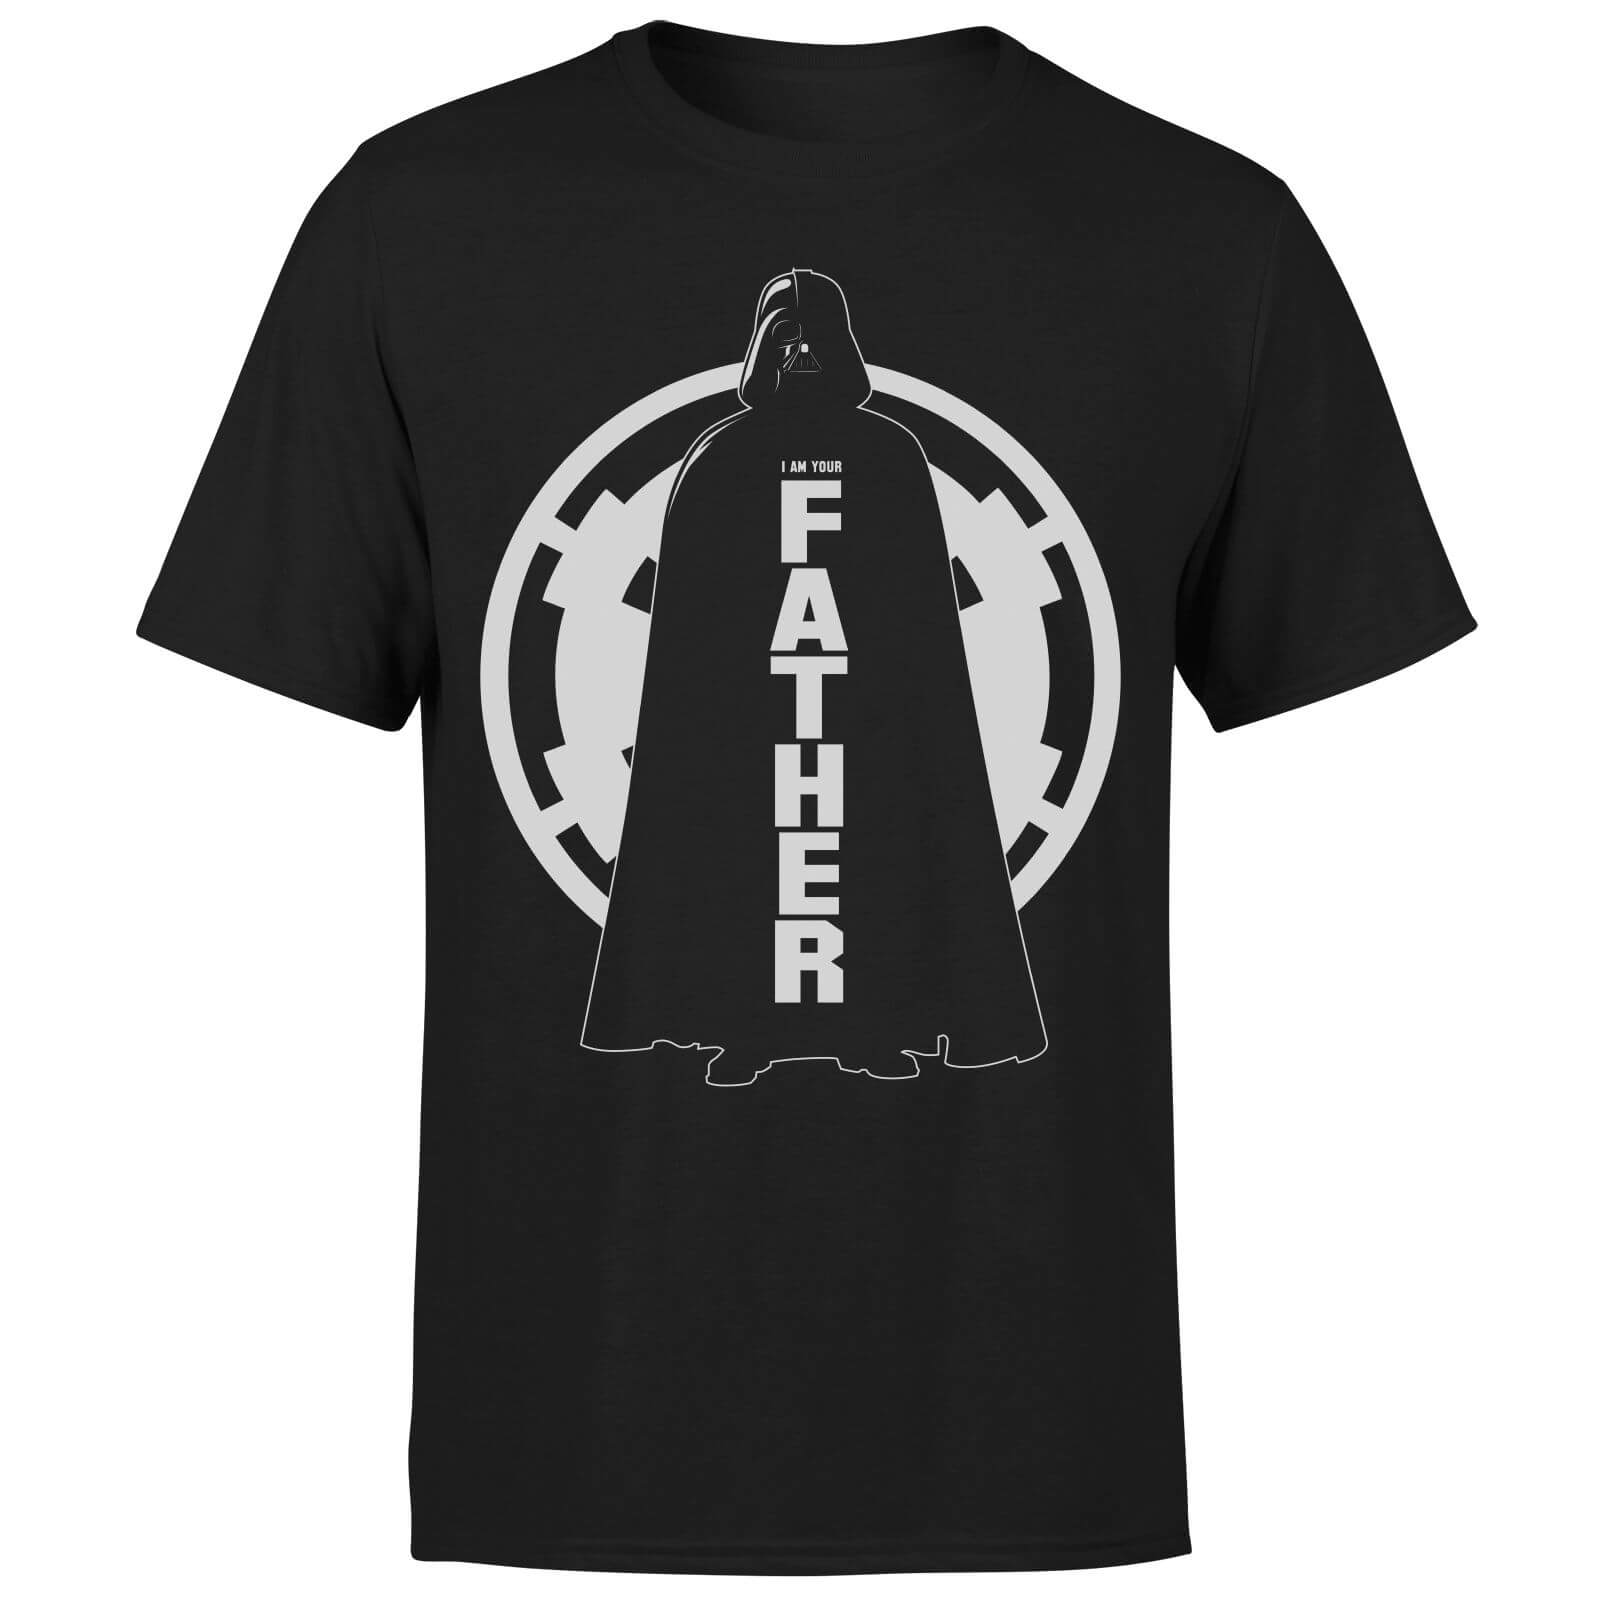 Star Wars Darth Vader Father Imperial Men